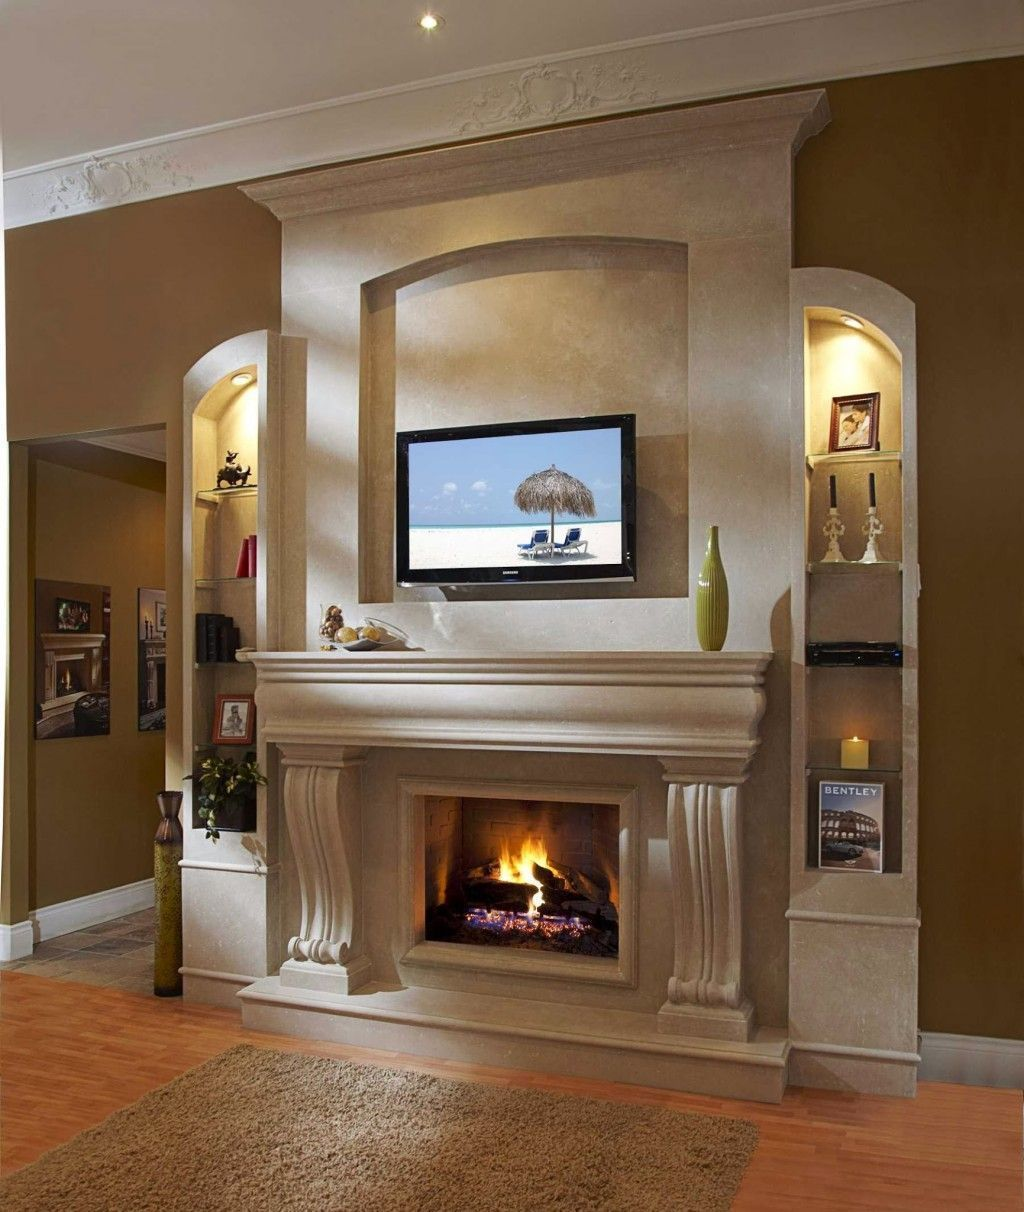 34 Awesome Traditional Fireplace Ideas Perfect For Wintertime